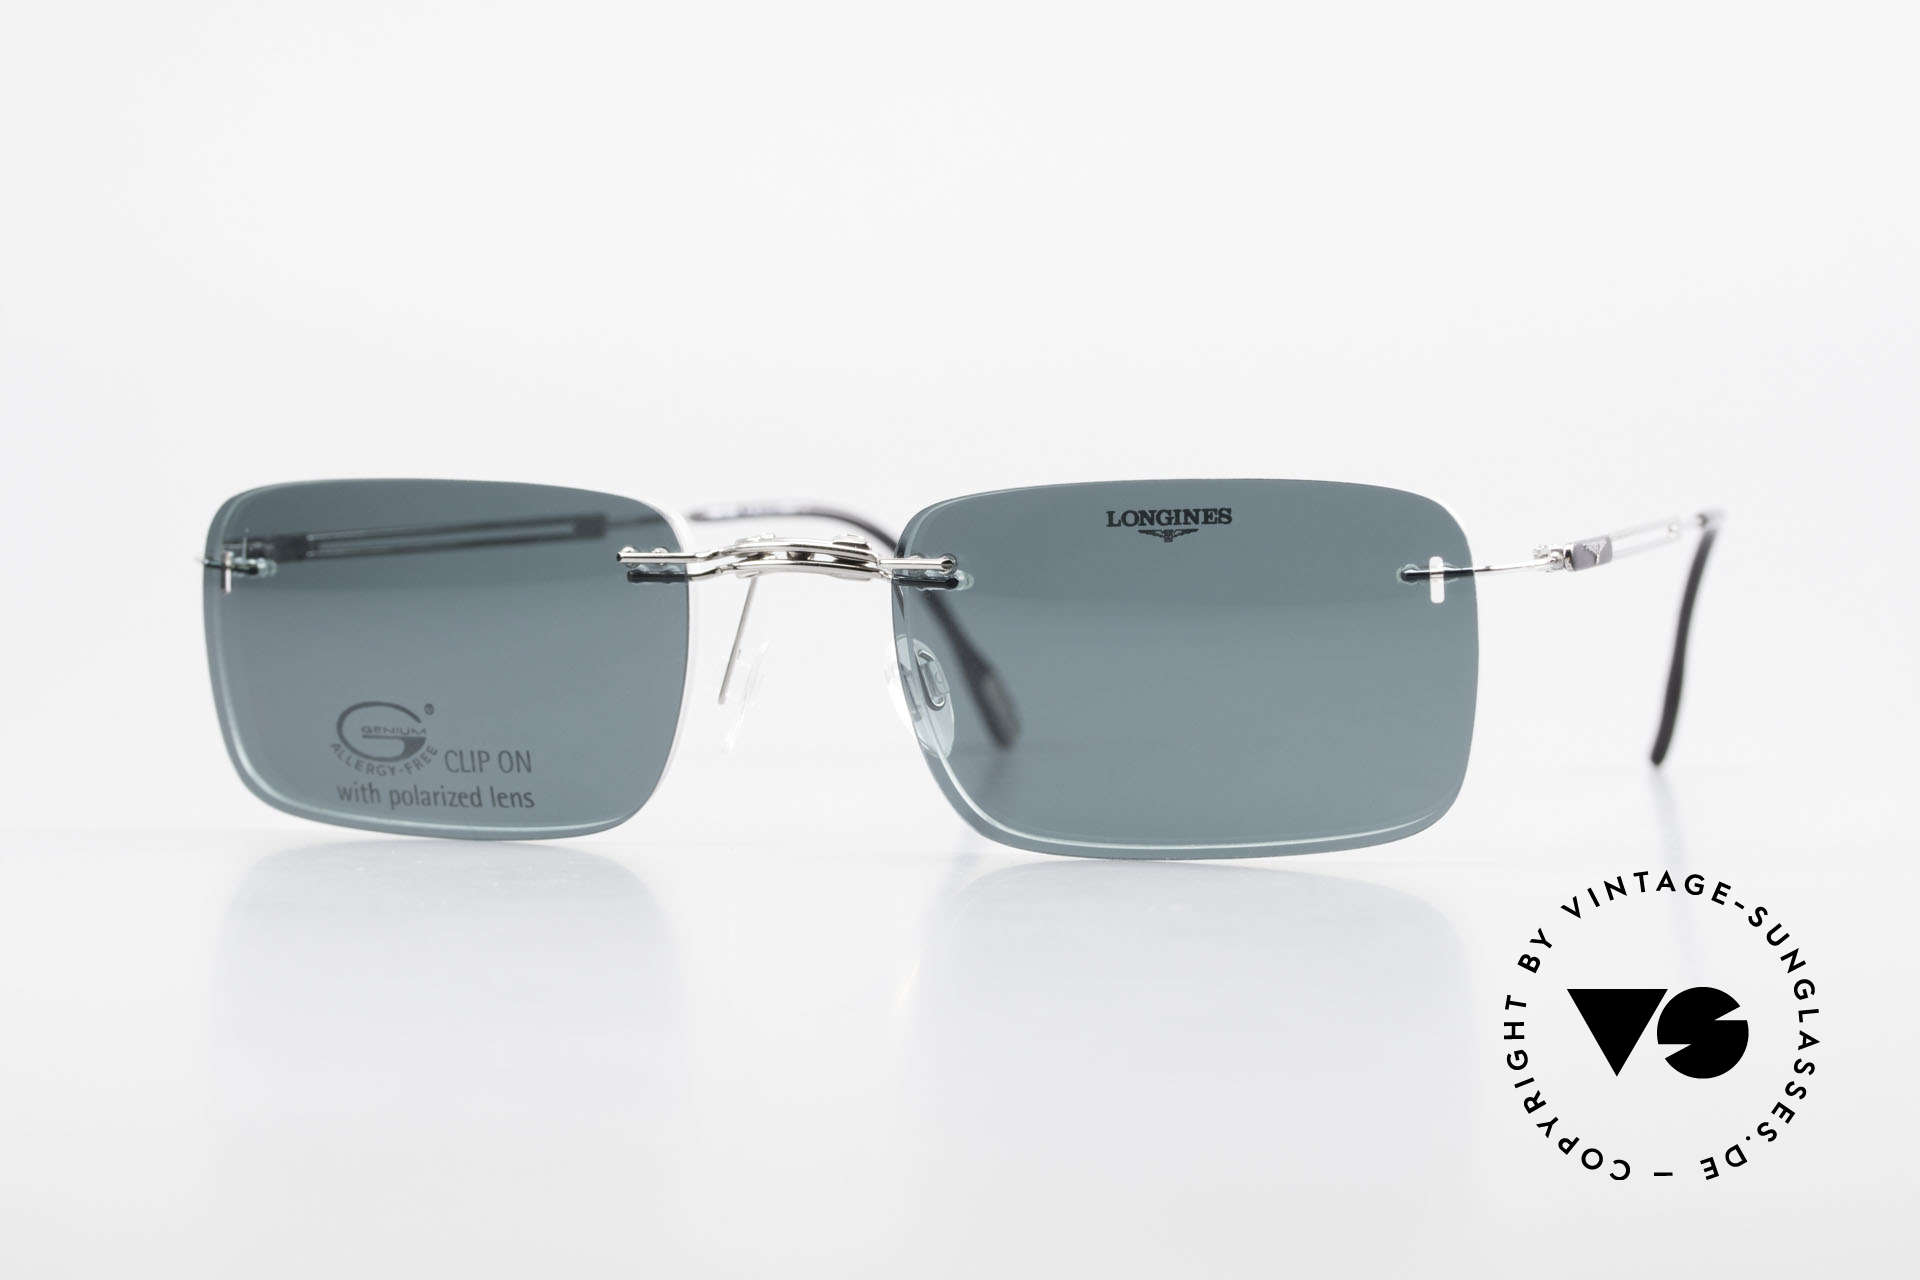 Longines 4367 Rimless Specs Polarized Clip, 90's Longines model 4367 color 330, size 53-21, 140, Made for Men